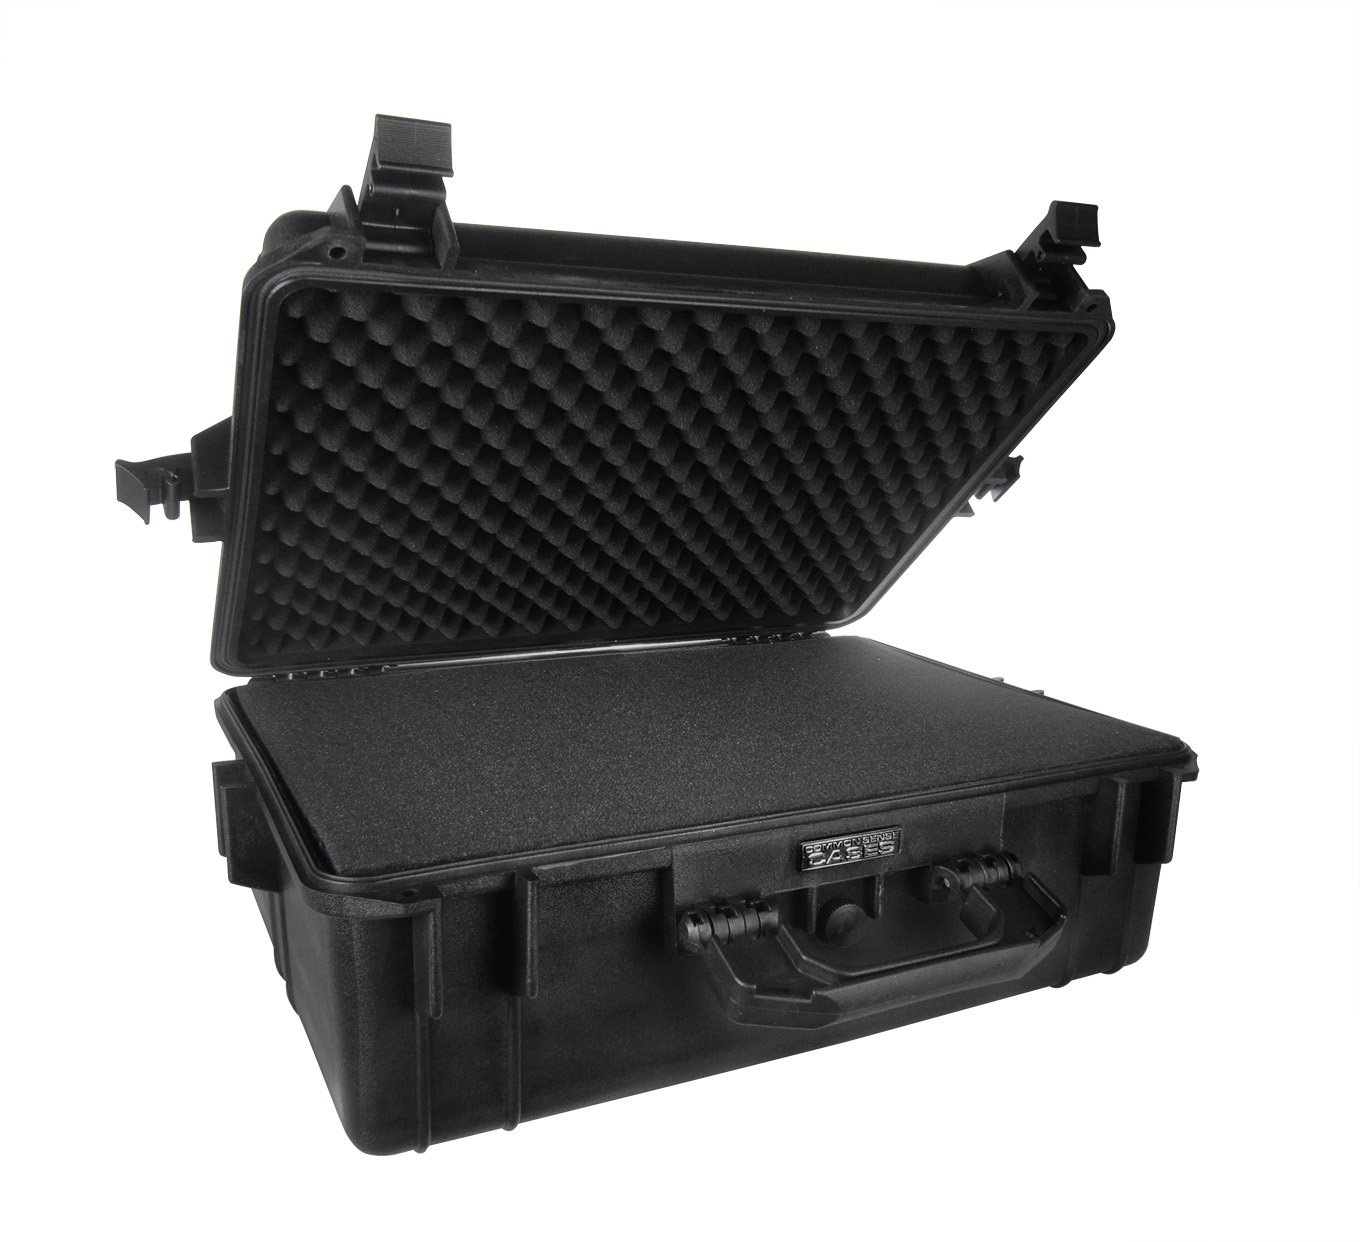 Carrying Case for Blade 350 QX and DJI Phantom Quadcopters